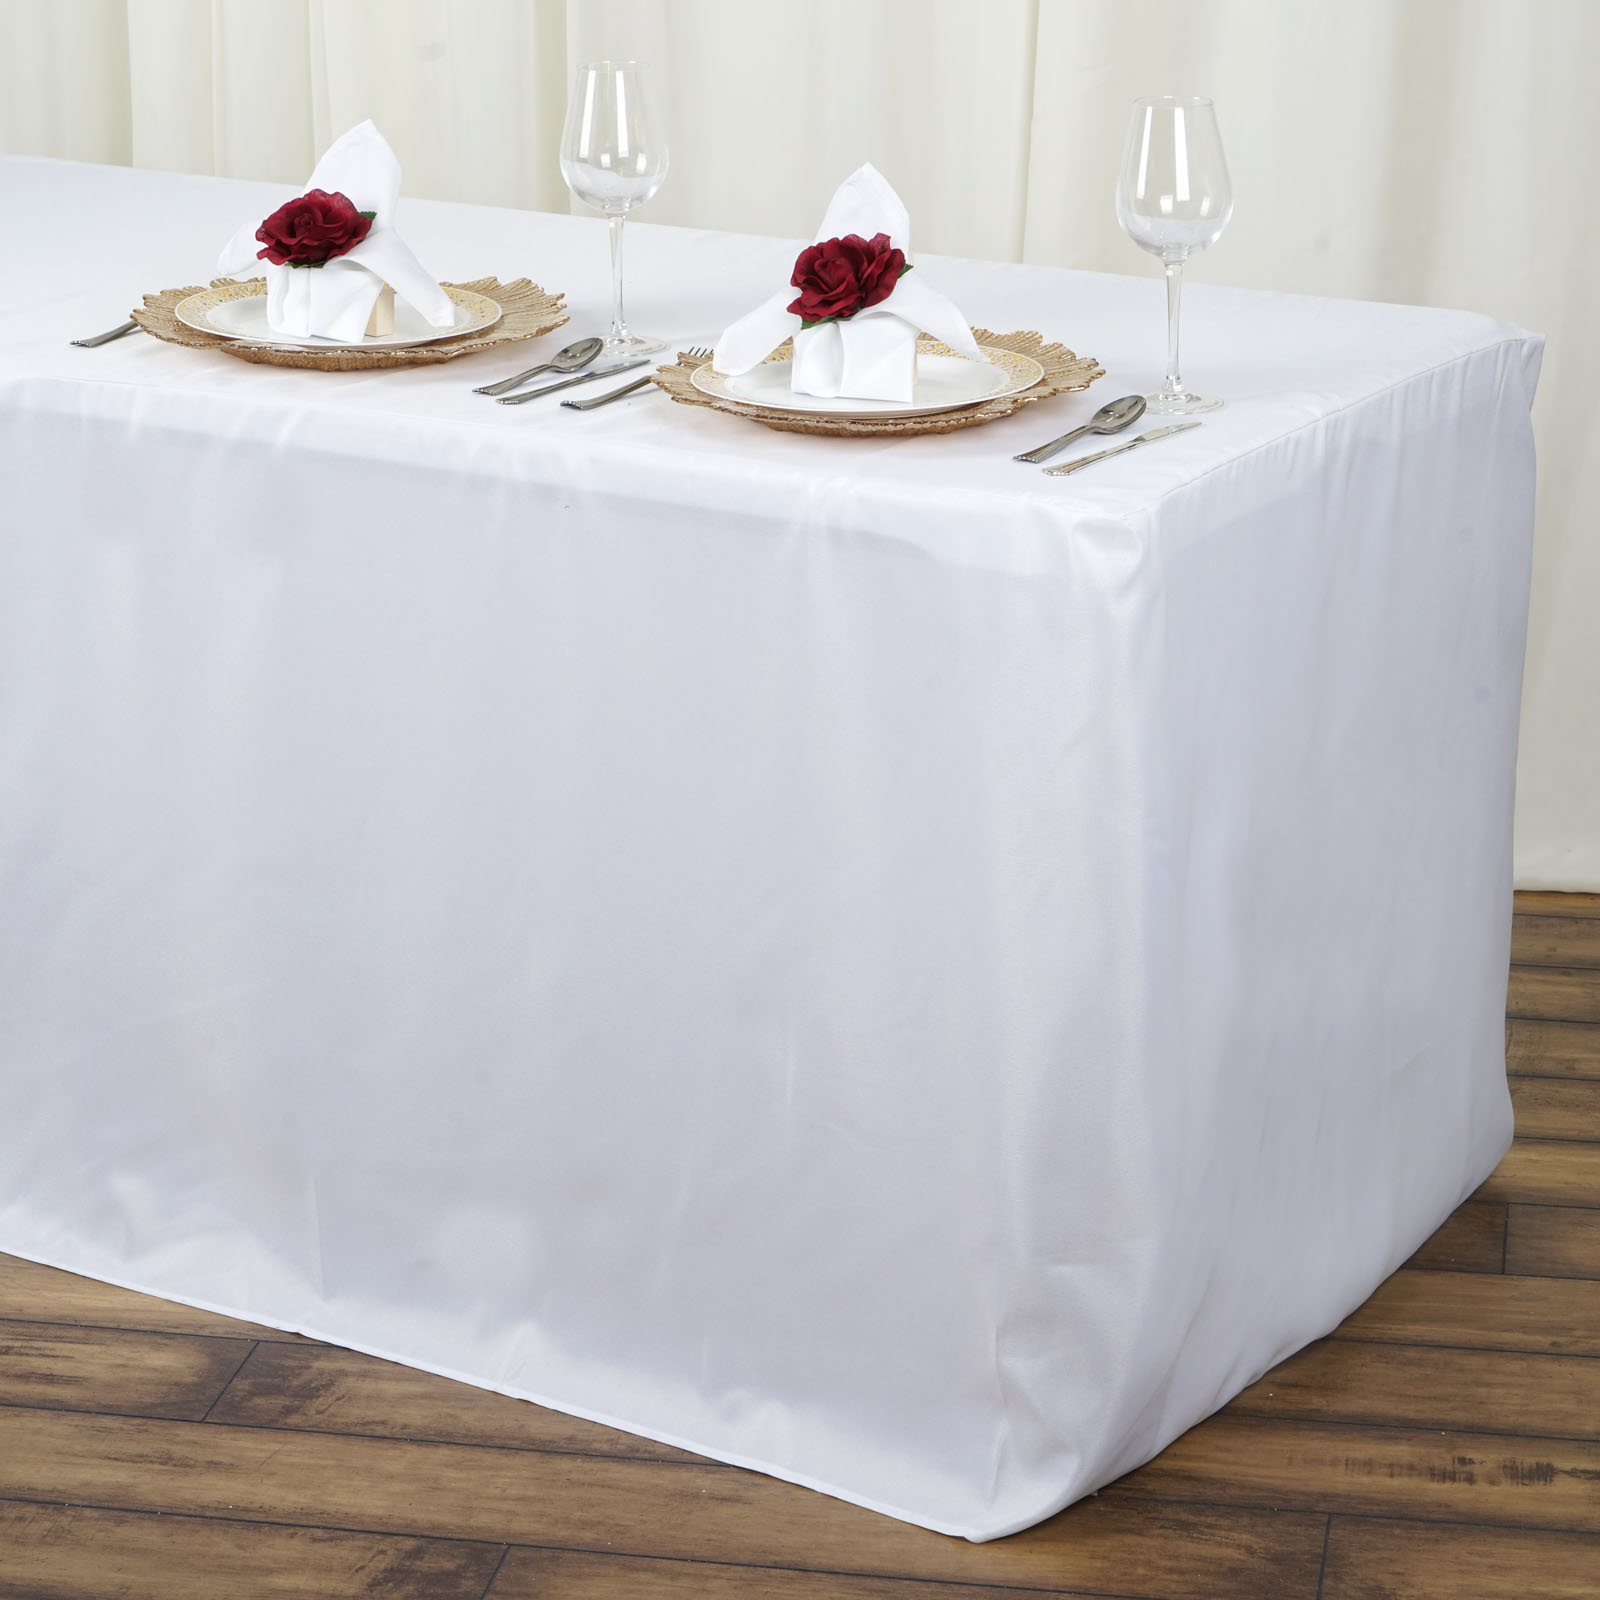 6 feet fitted polyester banquet rectangle tablecloth wedding party table linens ebay. Black Bedroom Furniture Sets. Home Design Ideas